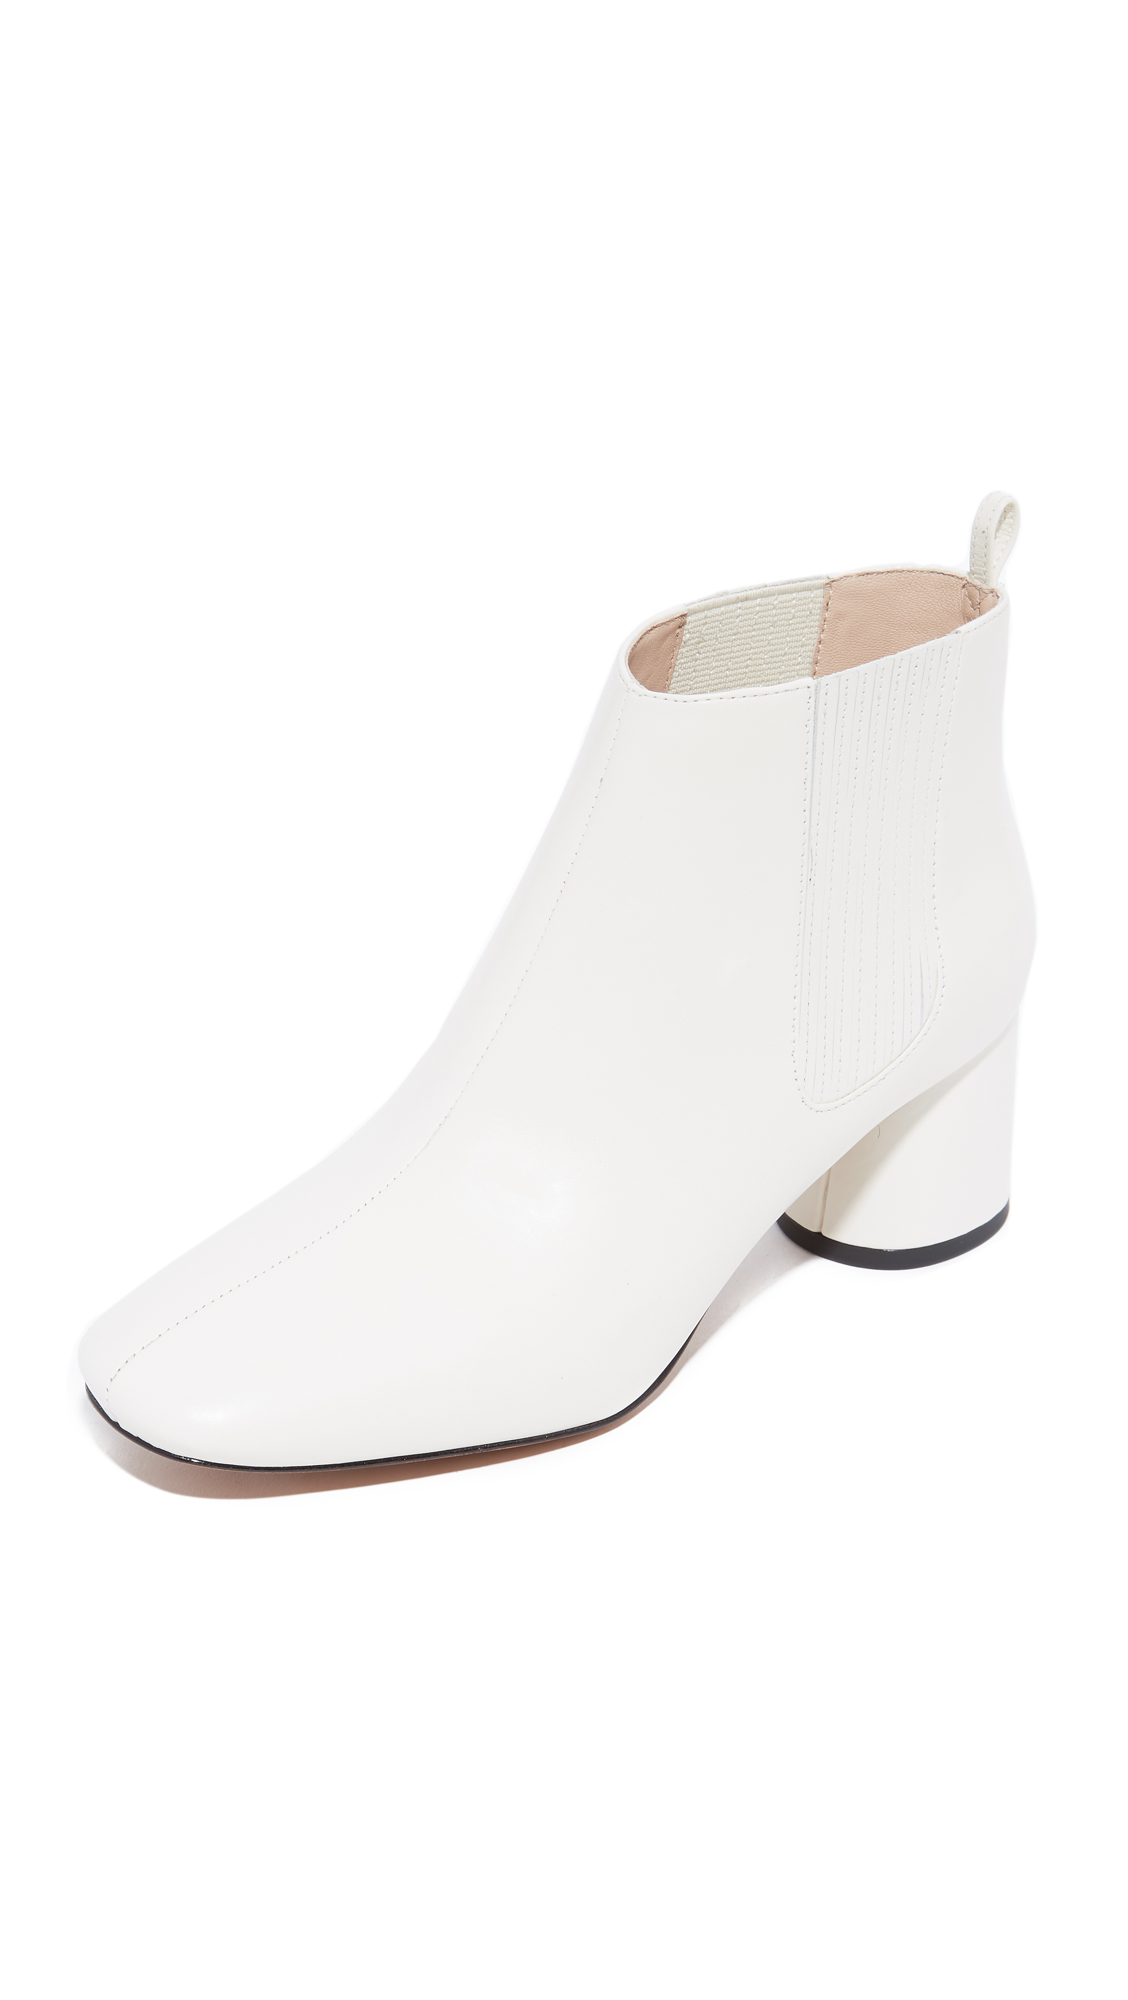 Sophisticated Marc Jacobs chelsea booties in bright leather. Hidden elastic insets at the sides and a pull tab at the top line. Covered, round heel with rubber patch. Leather sole. Leather: Calfskin. Imported, China. Measurements Heel: 2.25